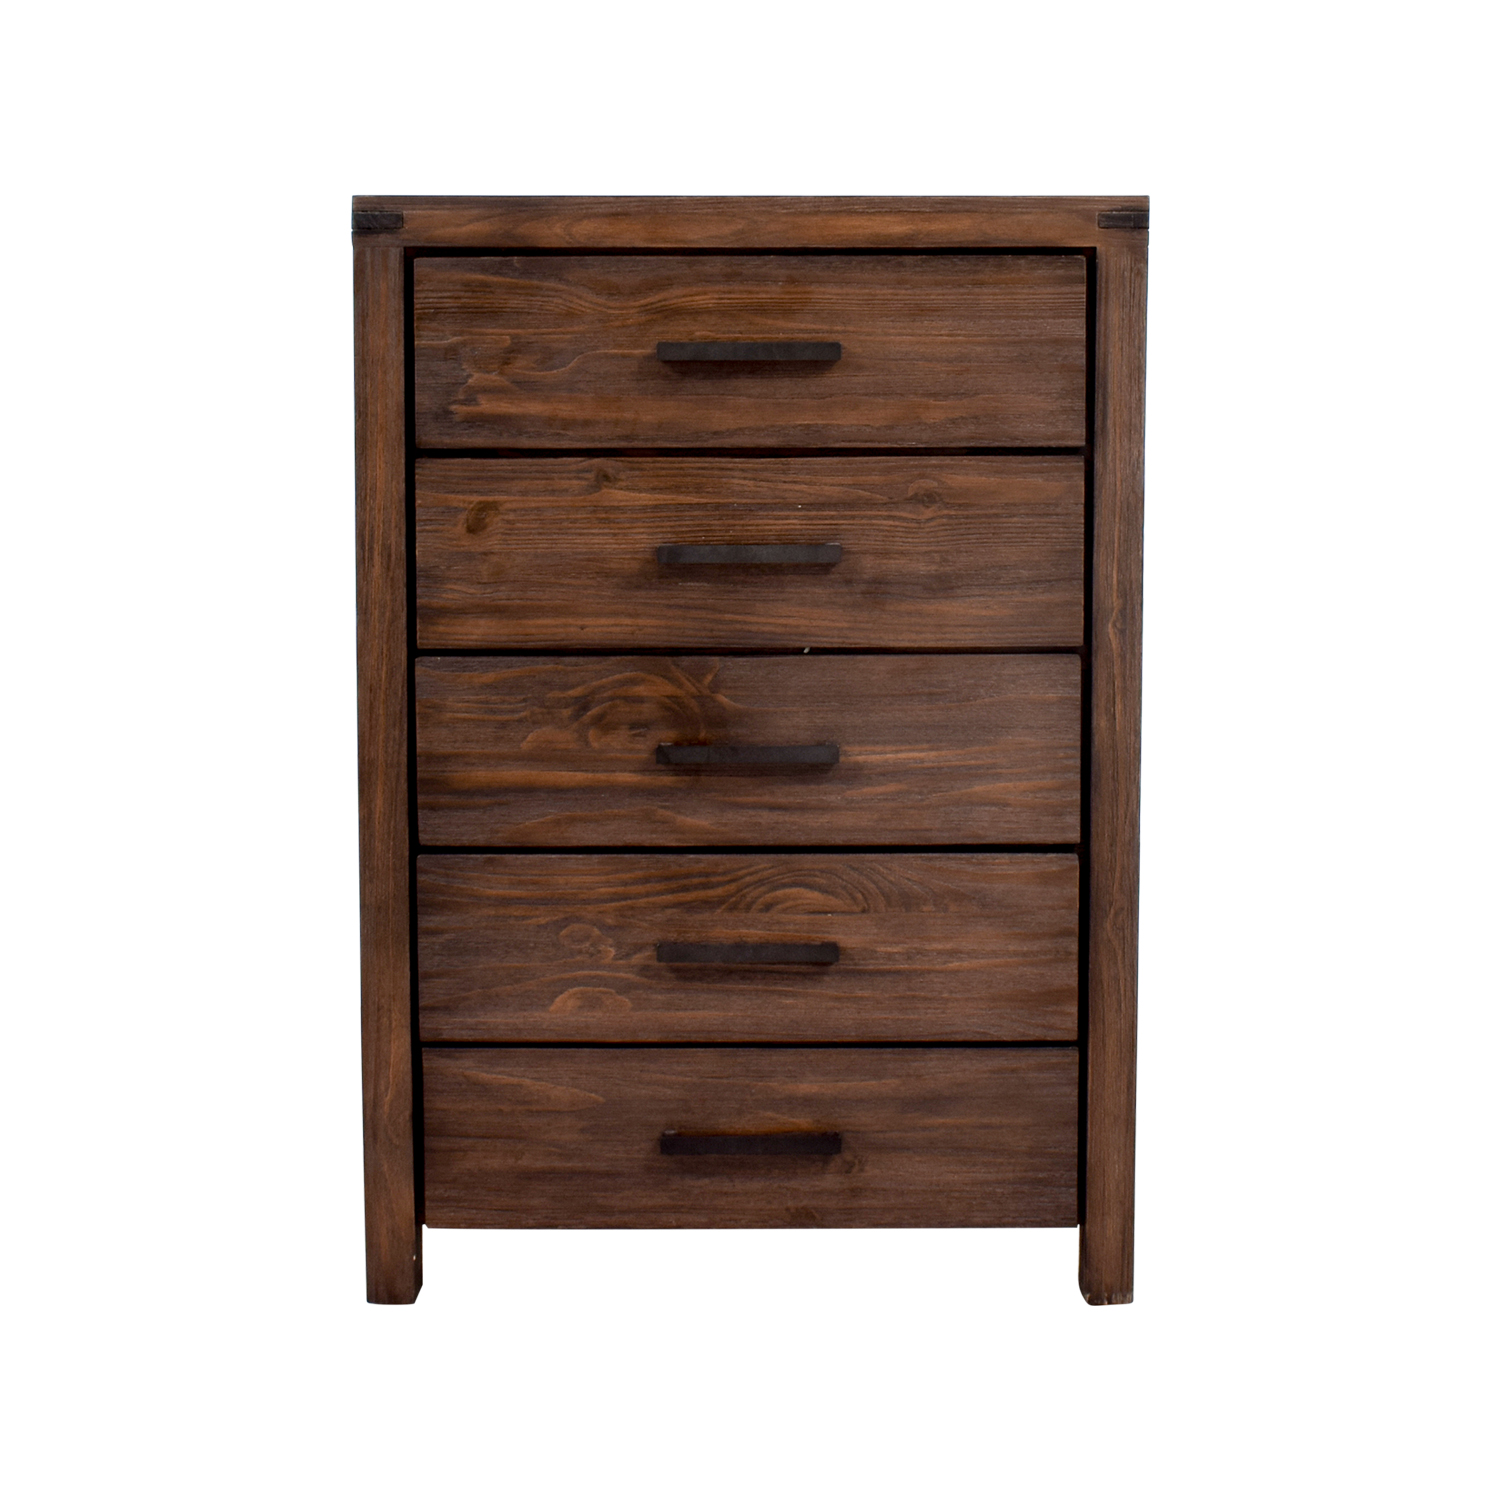 Bobs Furniture Bobs Furniture Austin Pine Chest discount